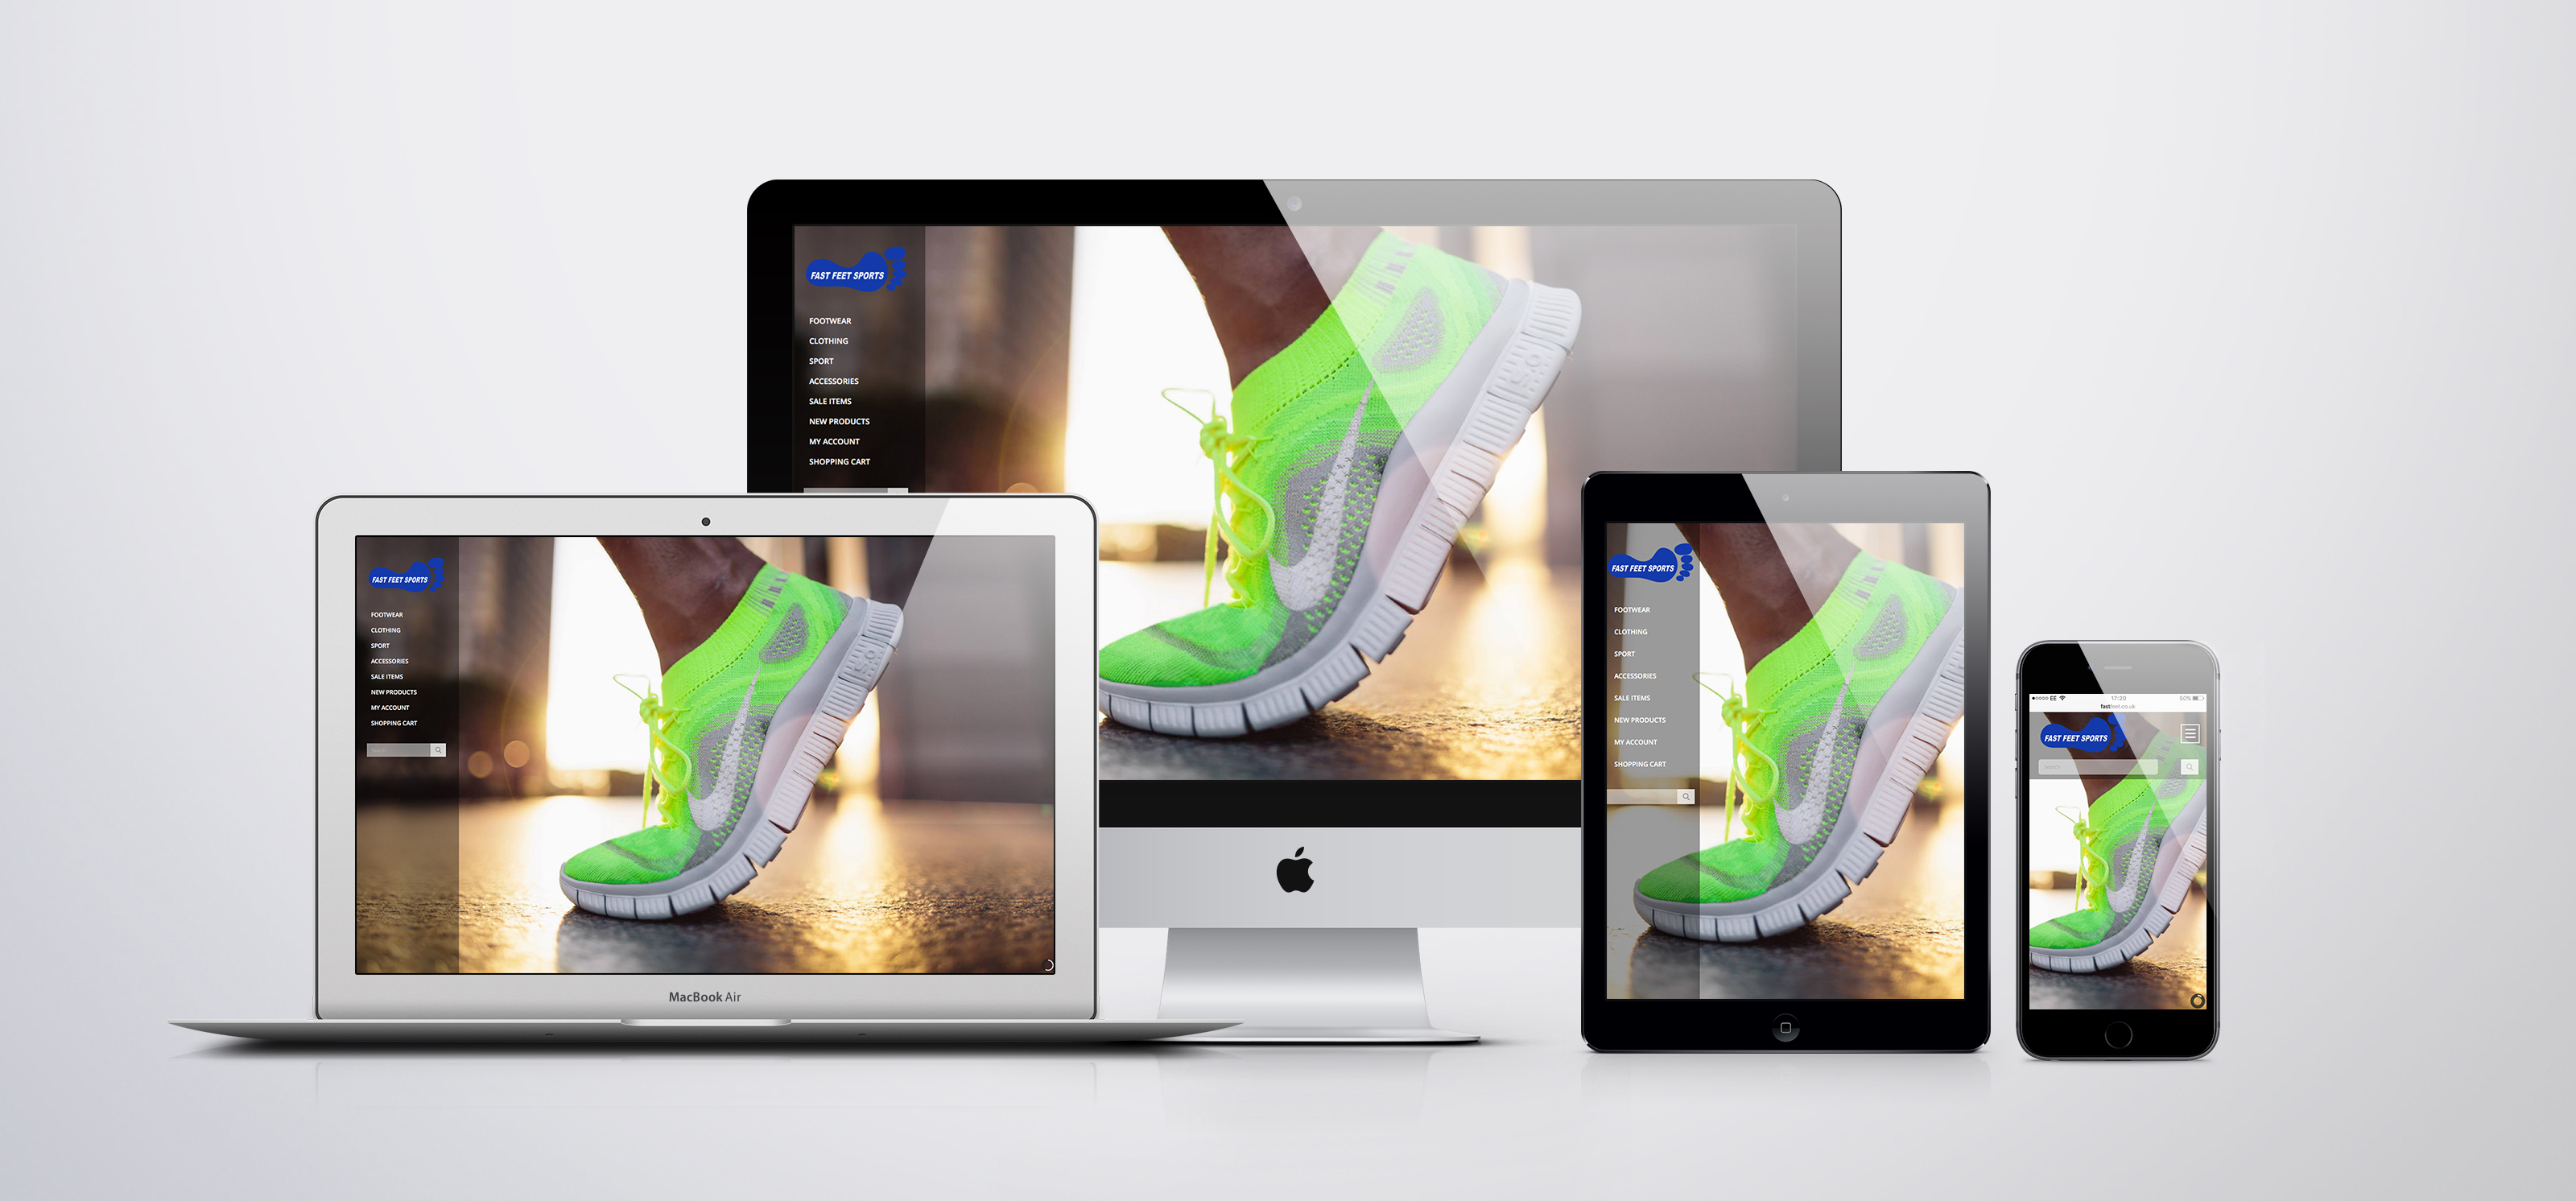 Fast Feet website shown on multiple devices